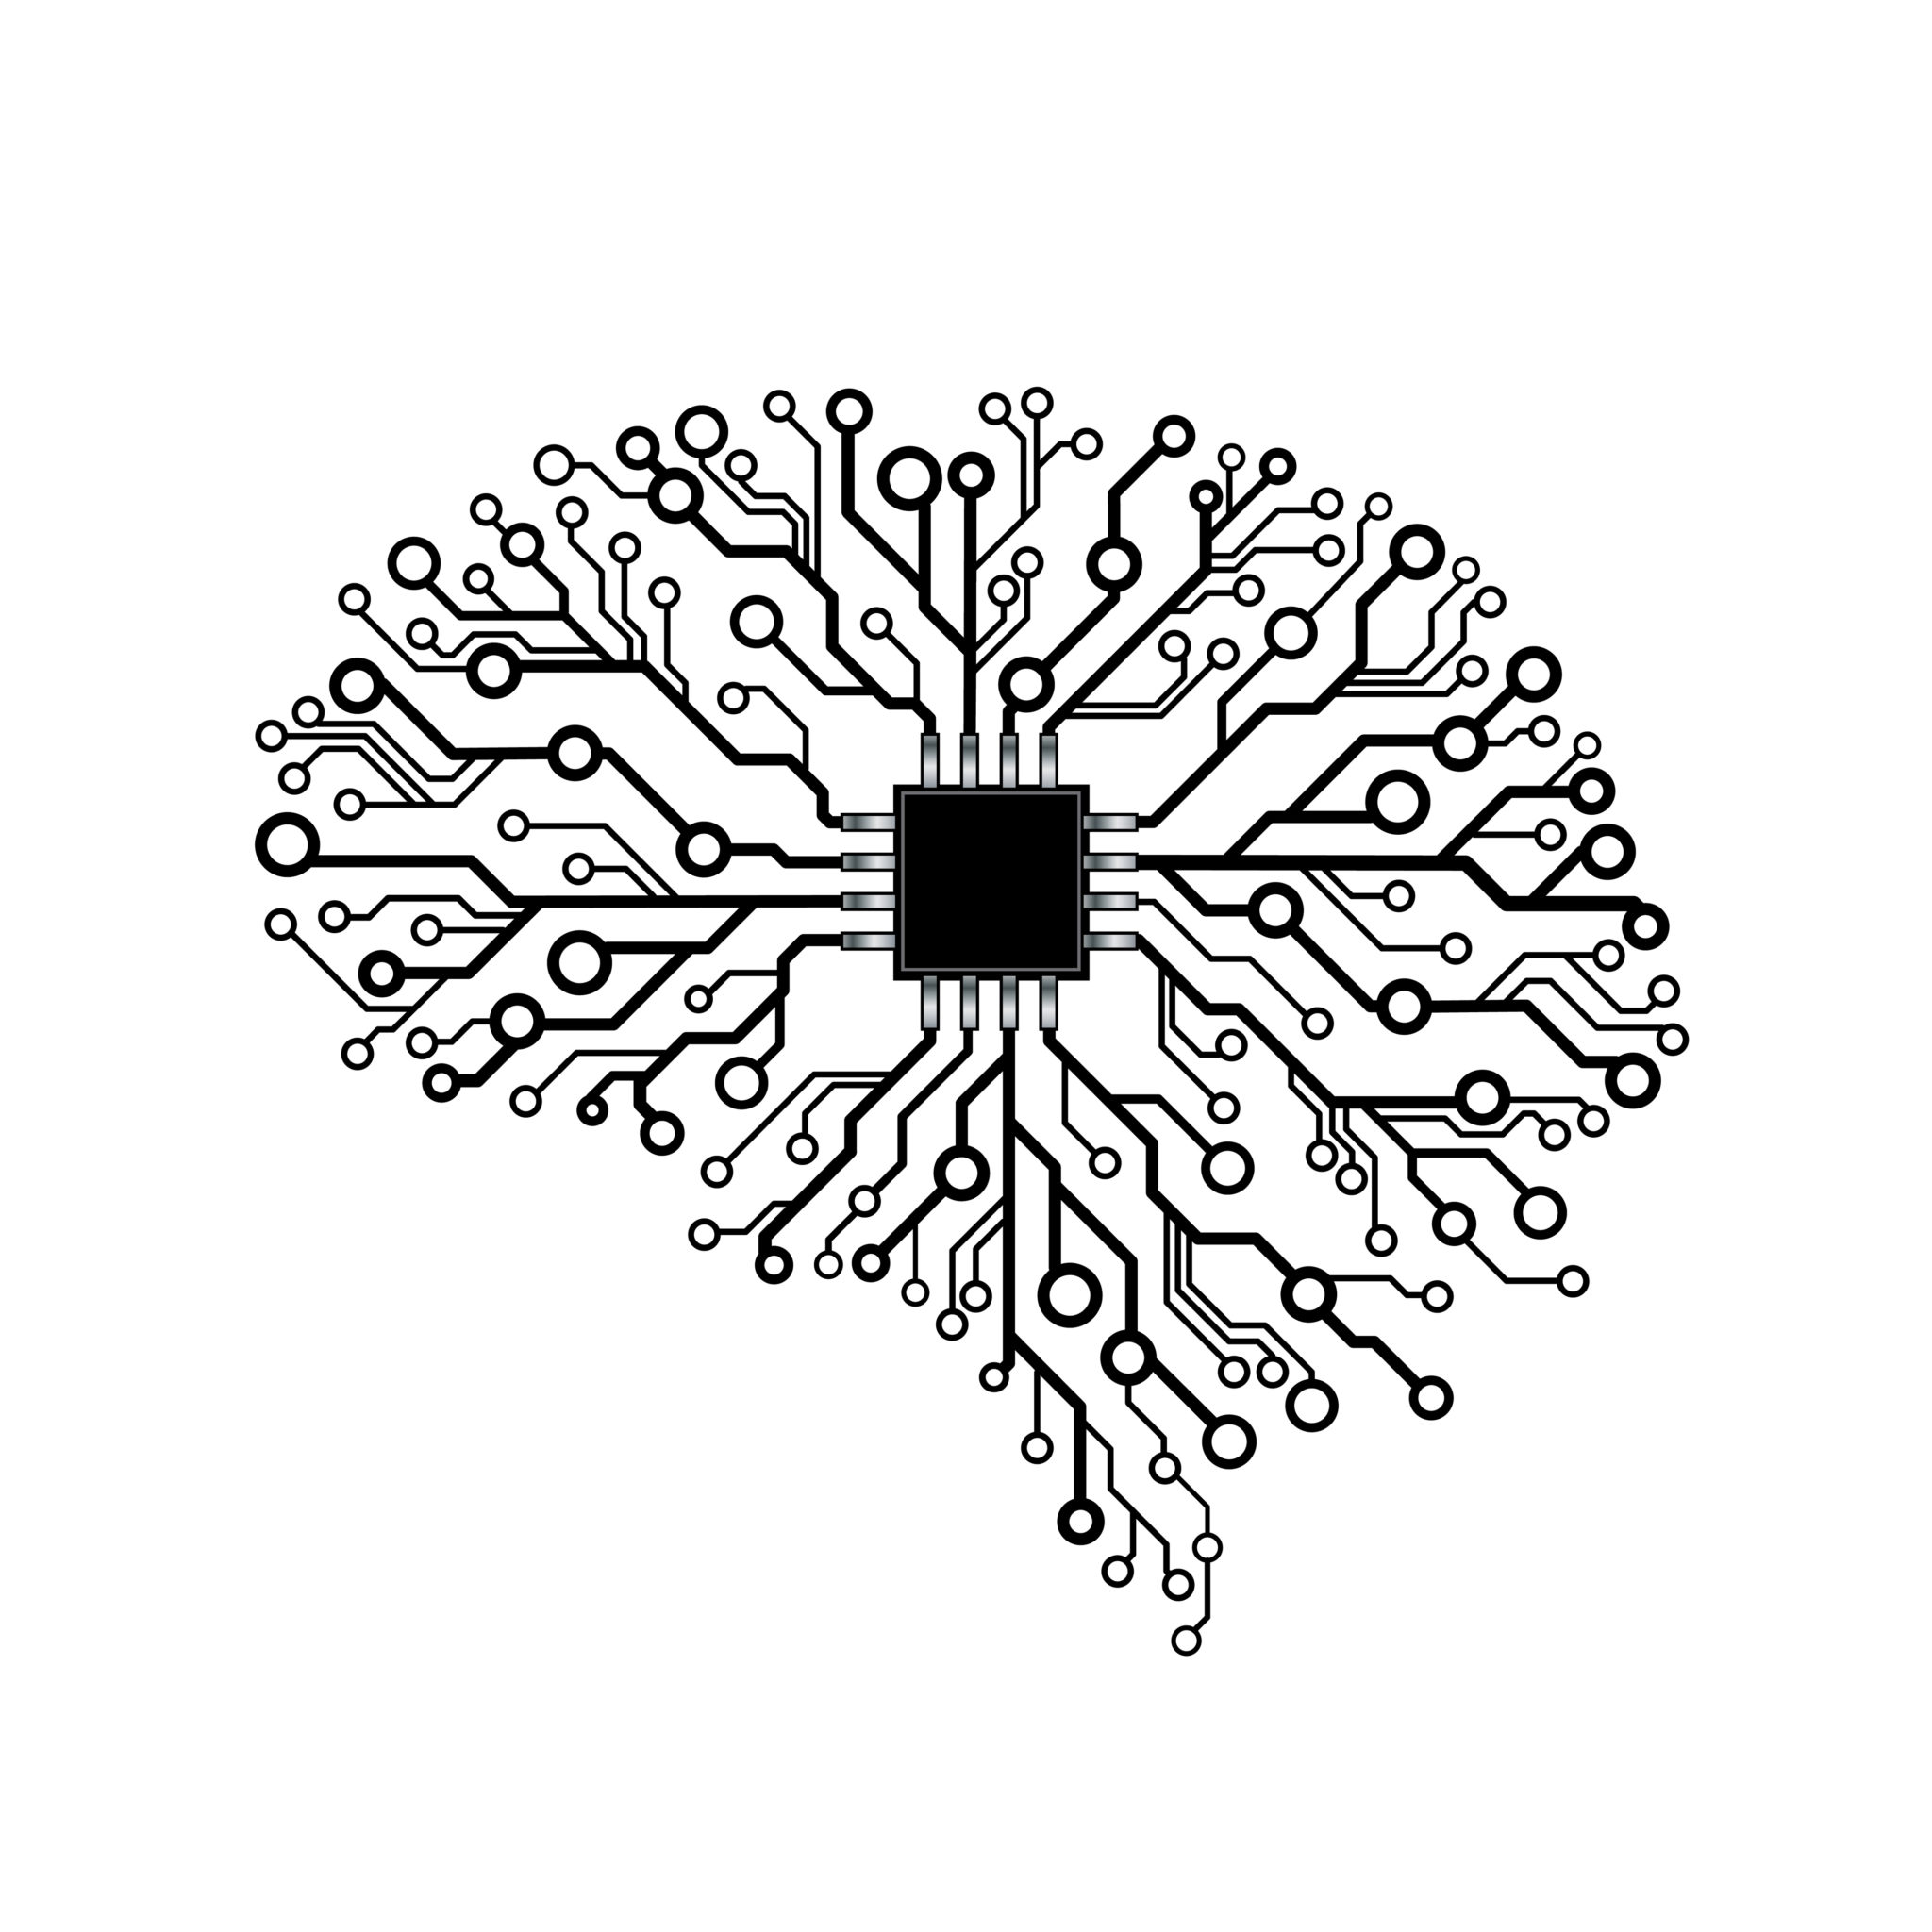 Replace Memories Enhance Your Iq With This Brain Chip